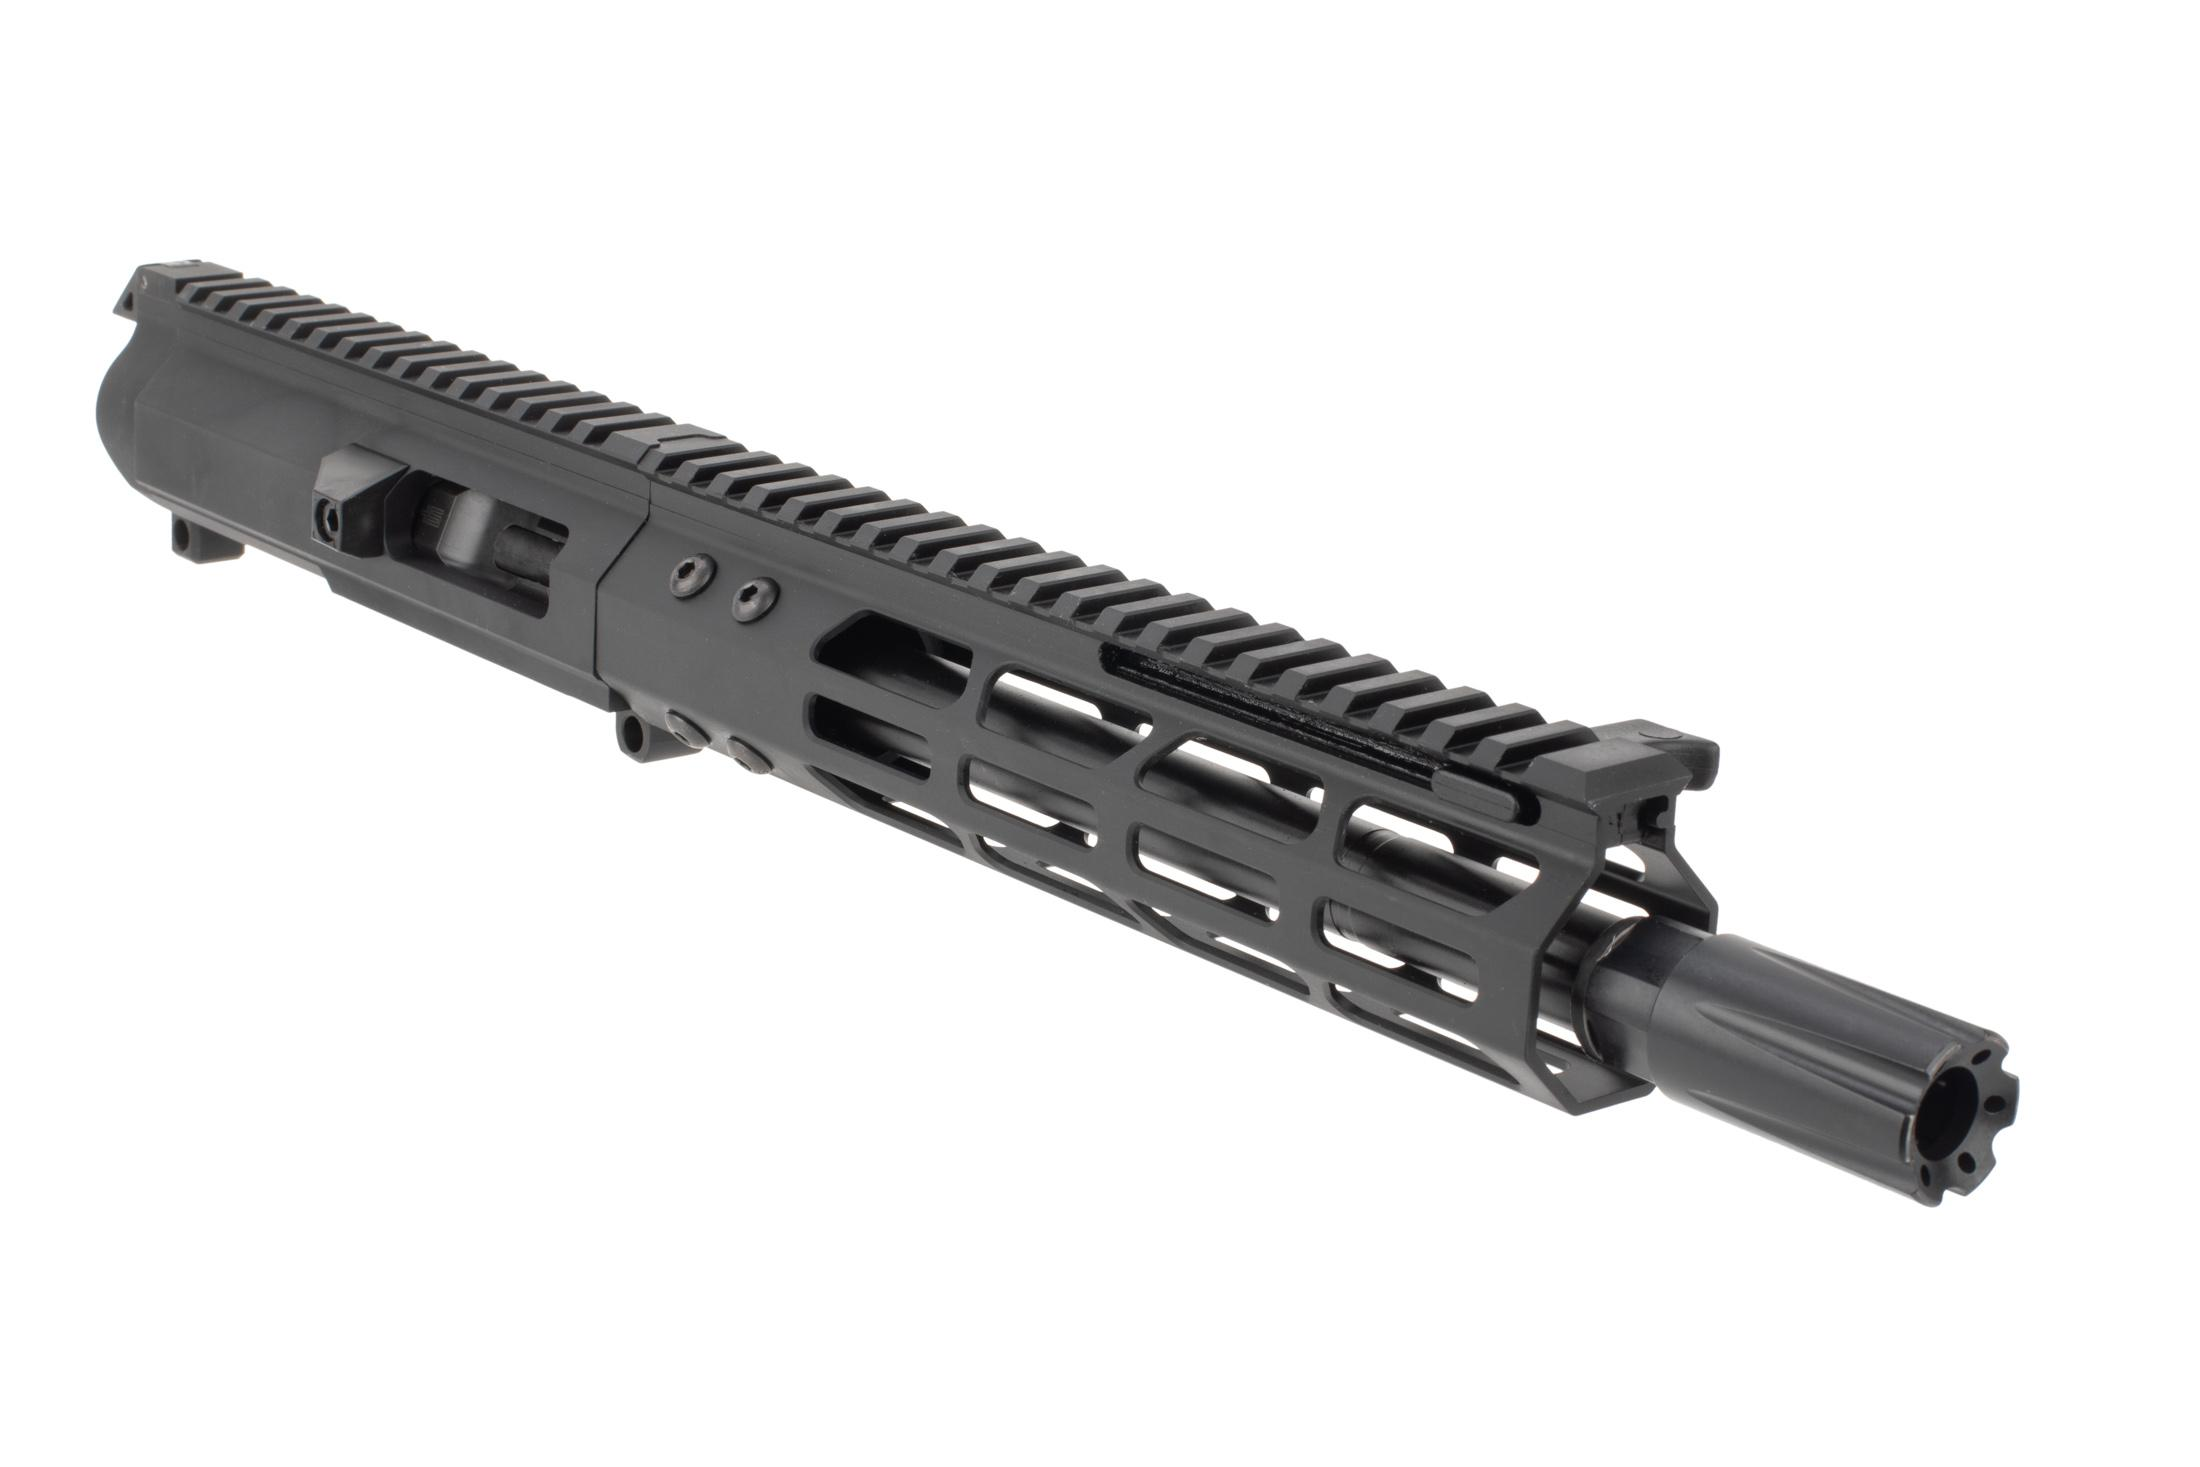 Foxtrot Mike Complete 8.5in .45 ACP AR-15 upper receiver with forward side charging handle, M-LOK Rail, and blast diffuser